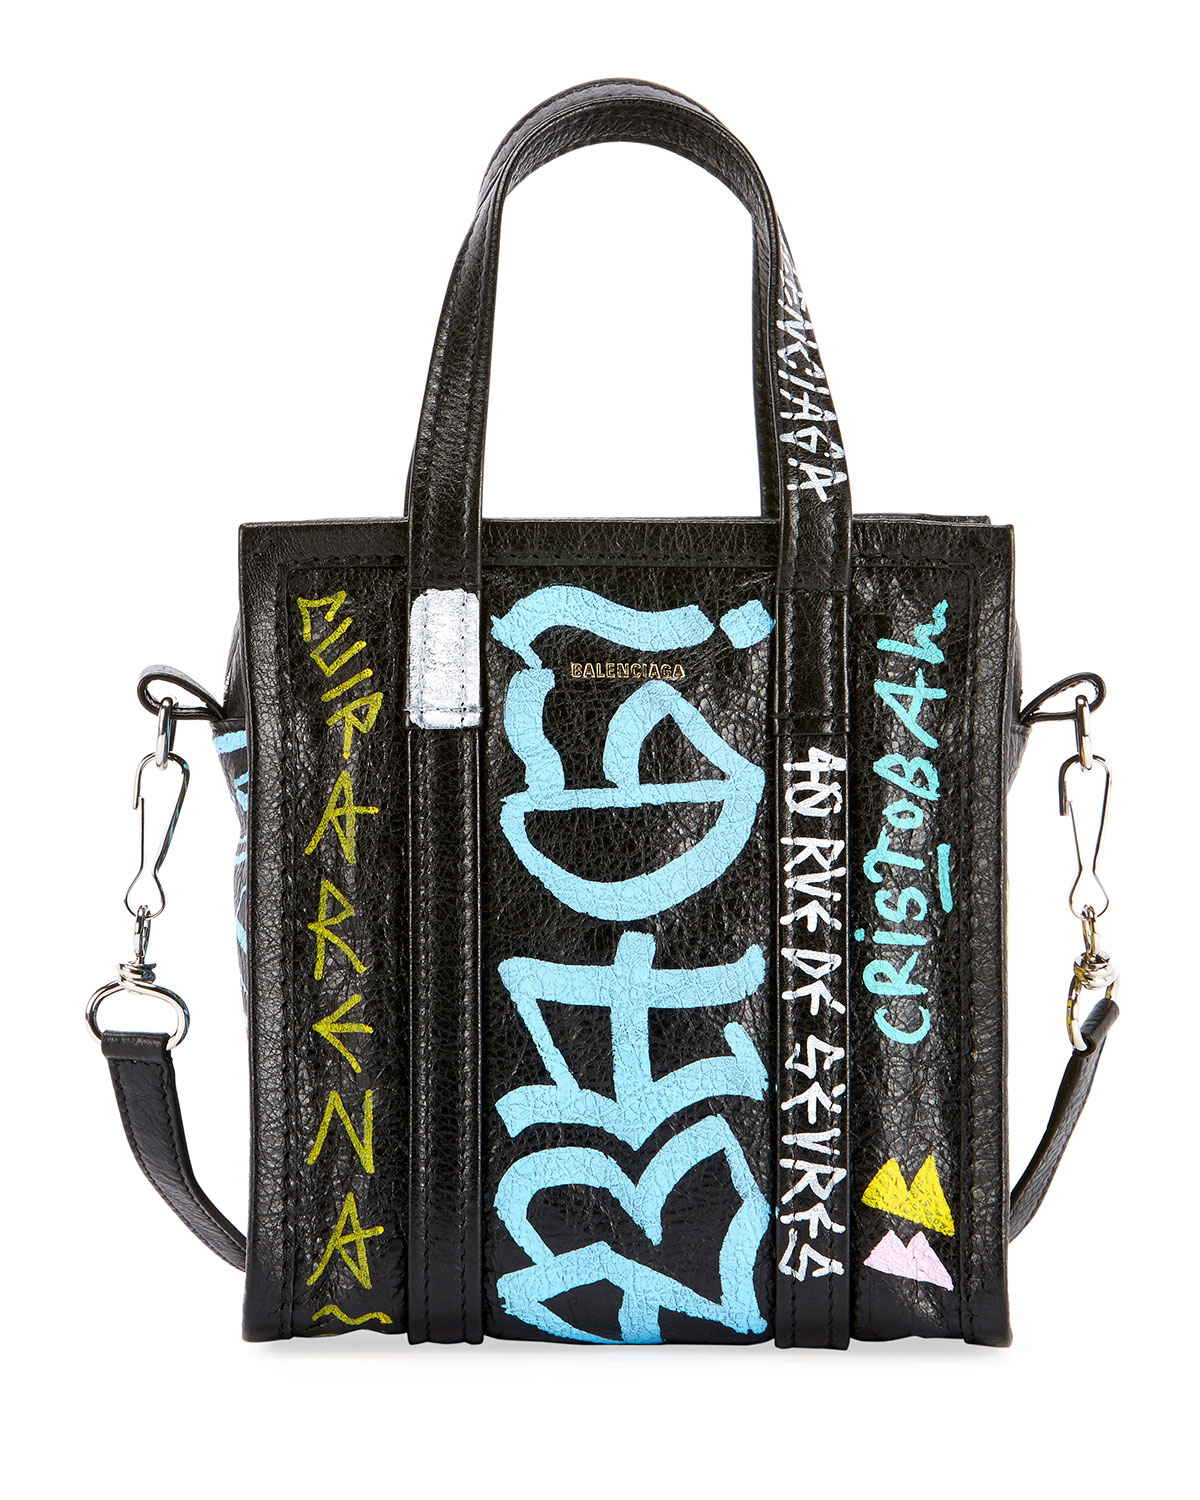 Bazar Xxs Graffiti Printed Textured-Leather Tote, Black Pattern